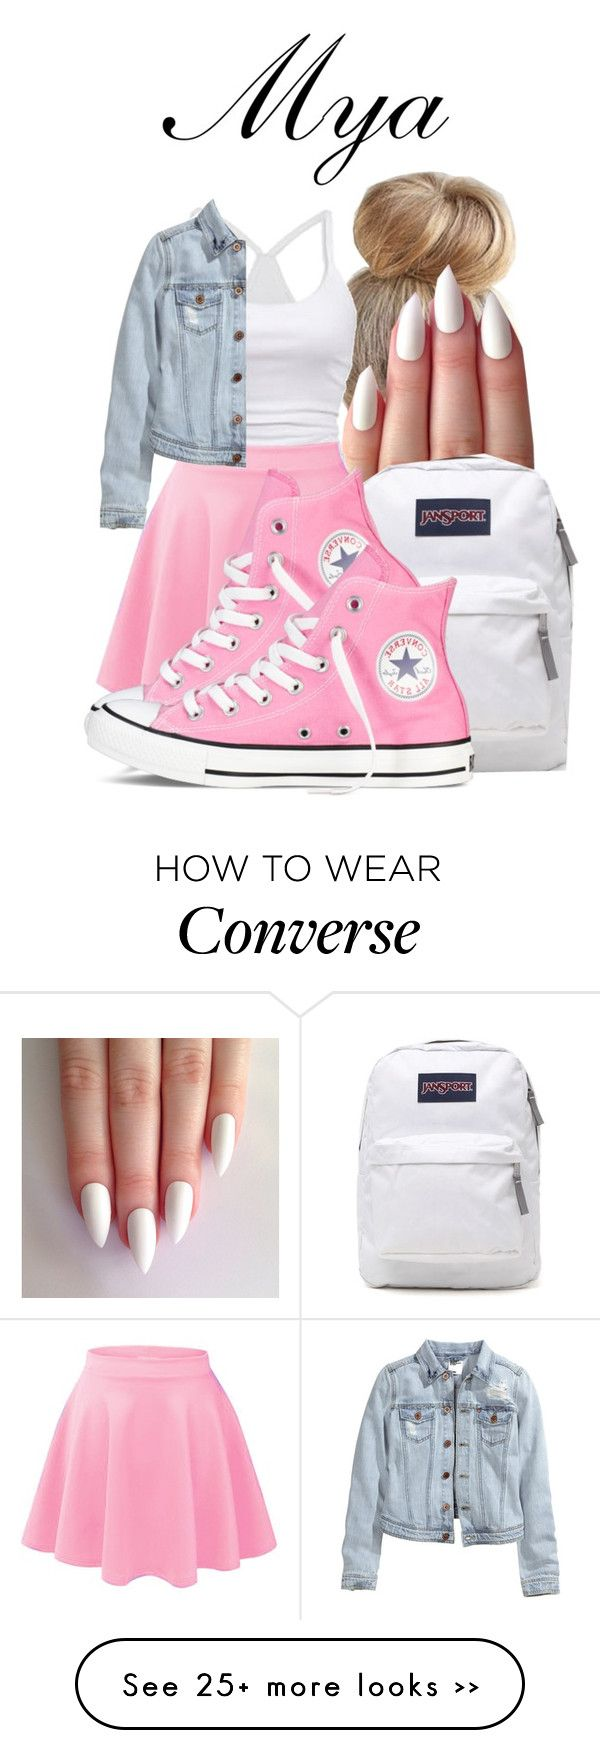 """."" by honey-cocaine1972 on Polyvore"